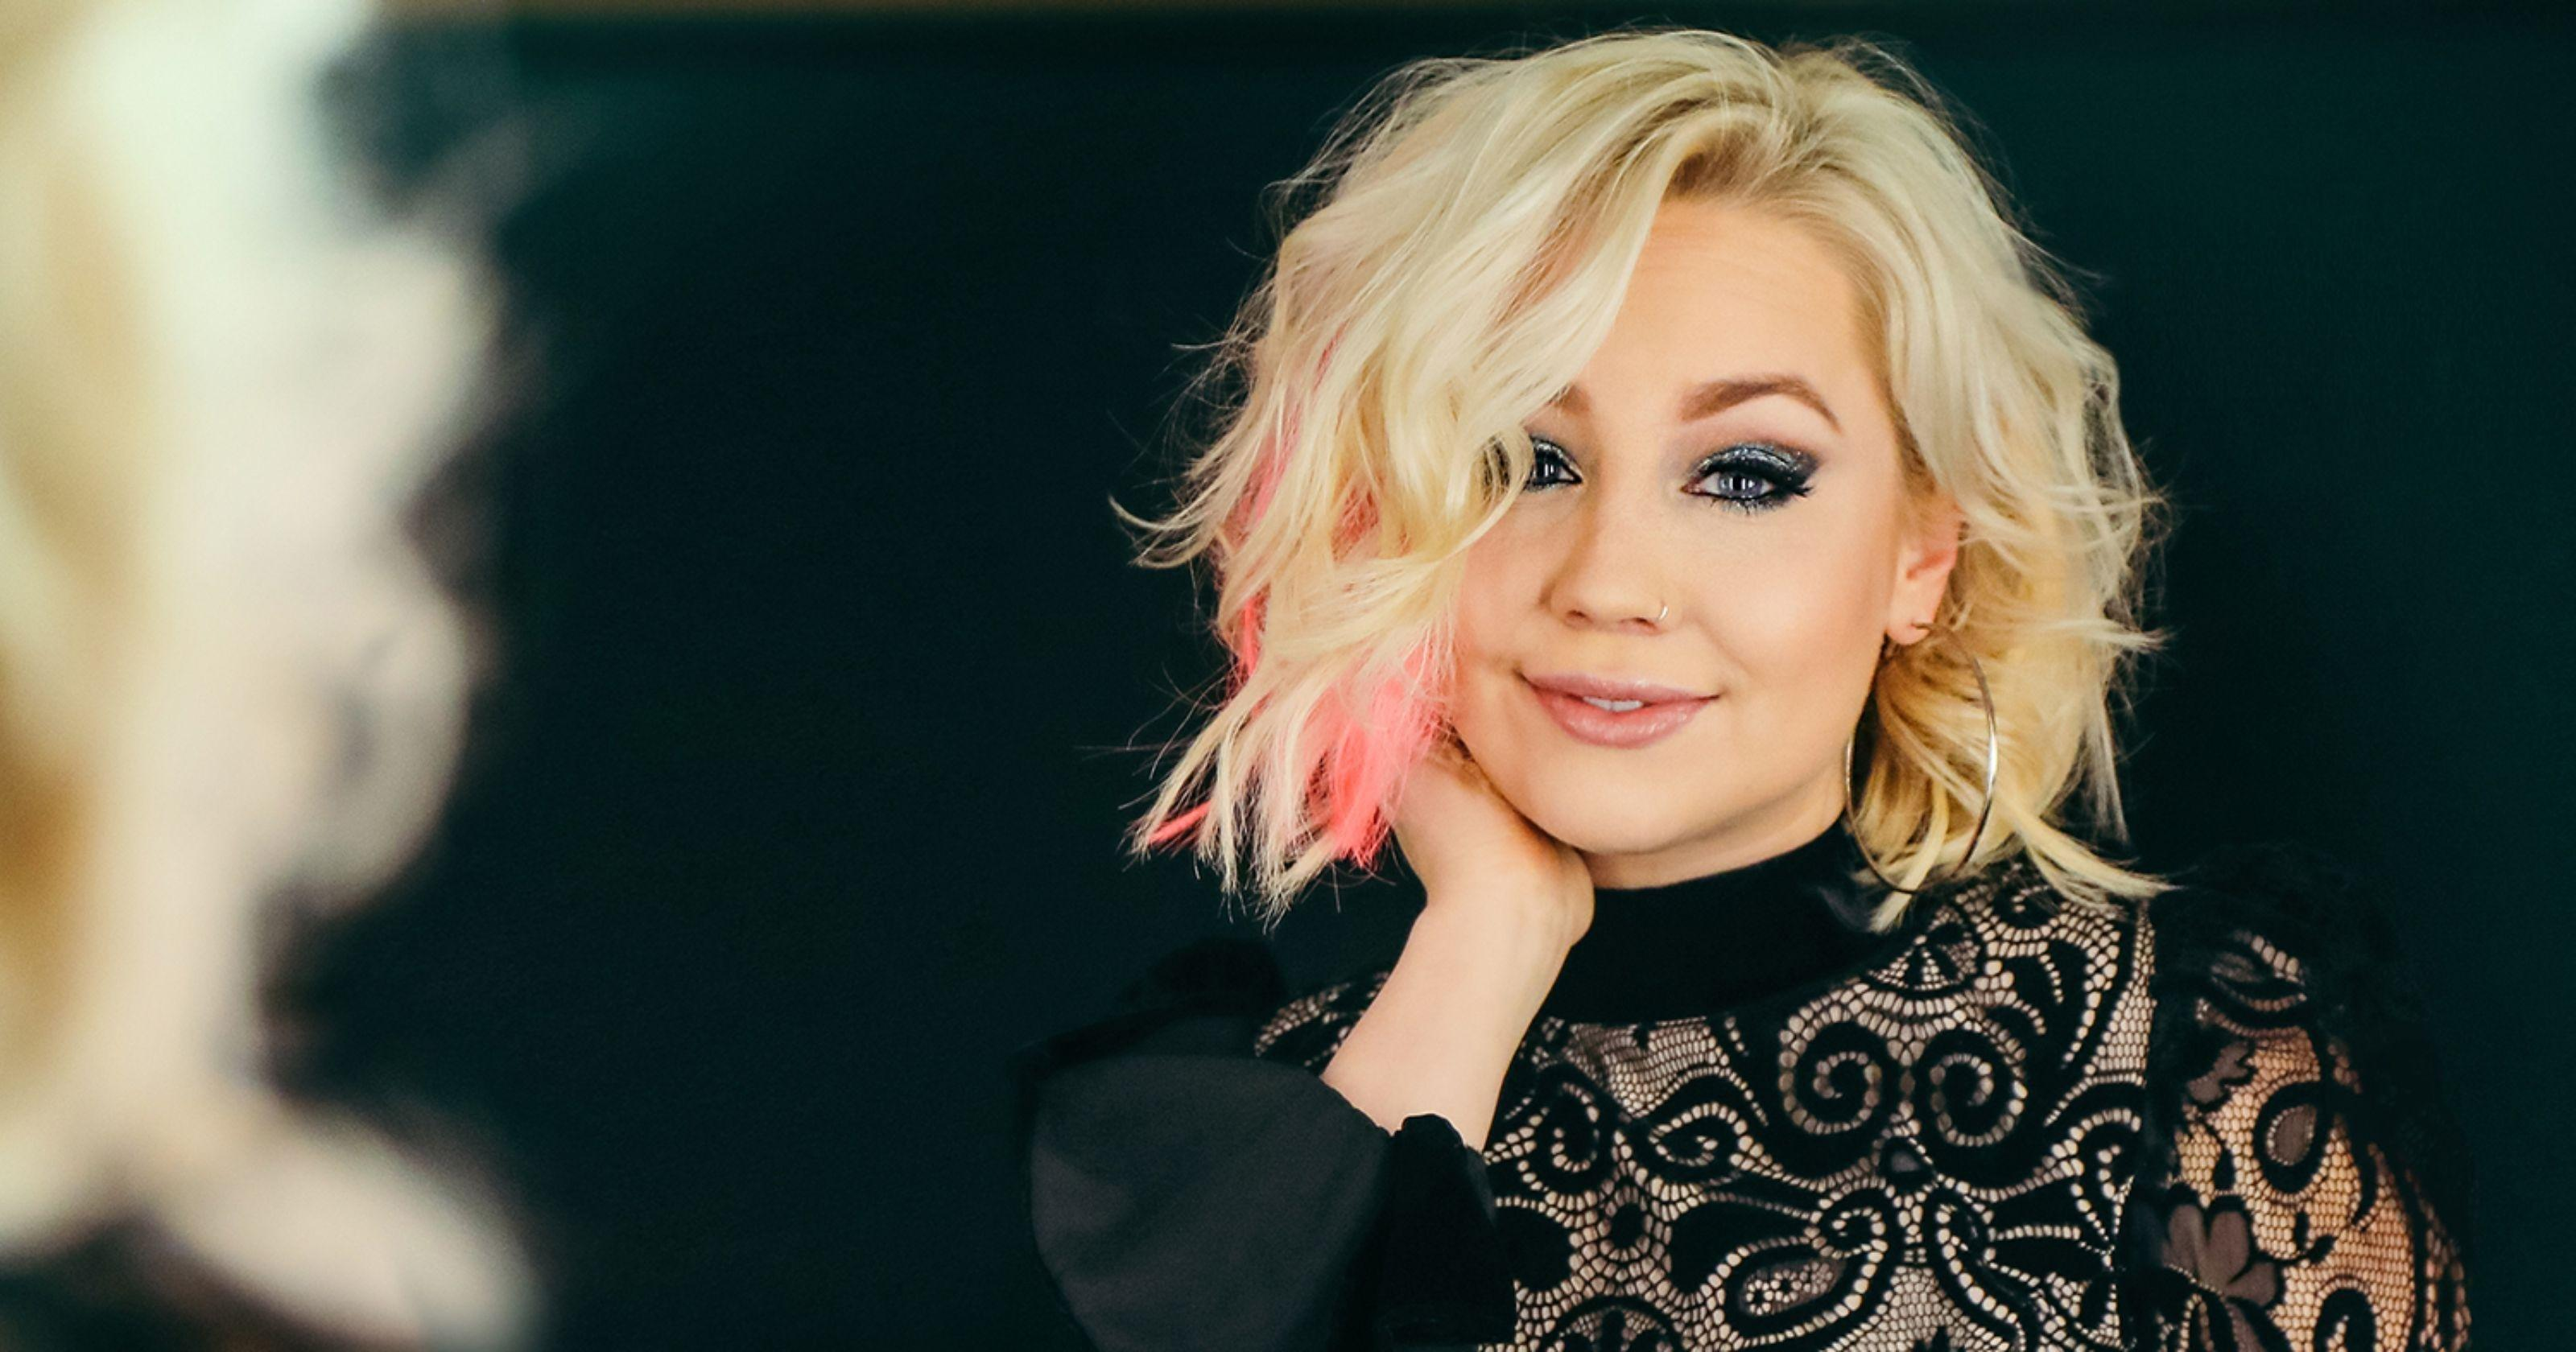 'the Voice' Contestant Raelynn To Talk About Living With Diabetes At Salisbury Event